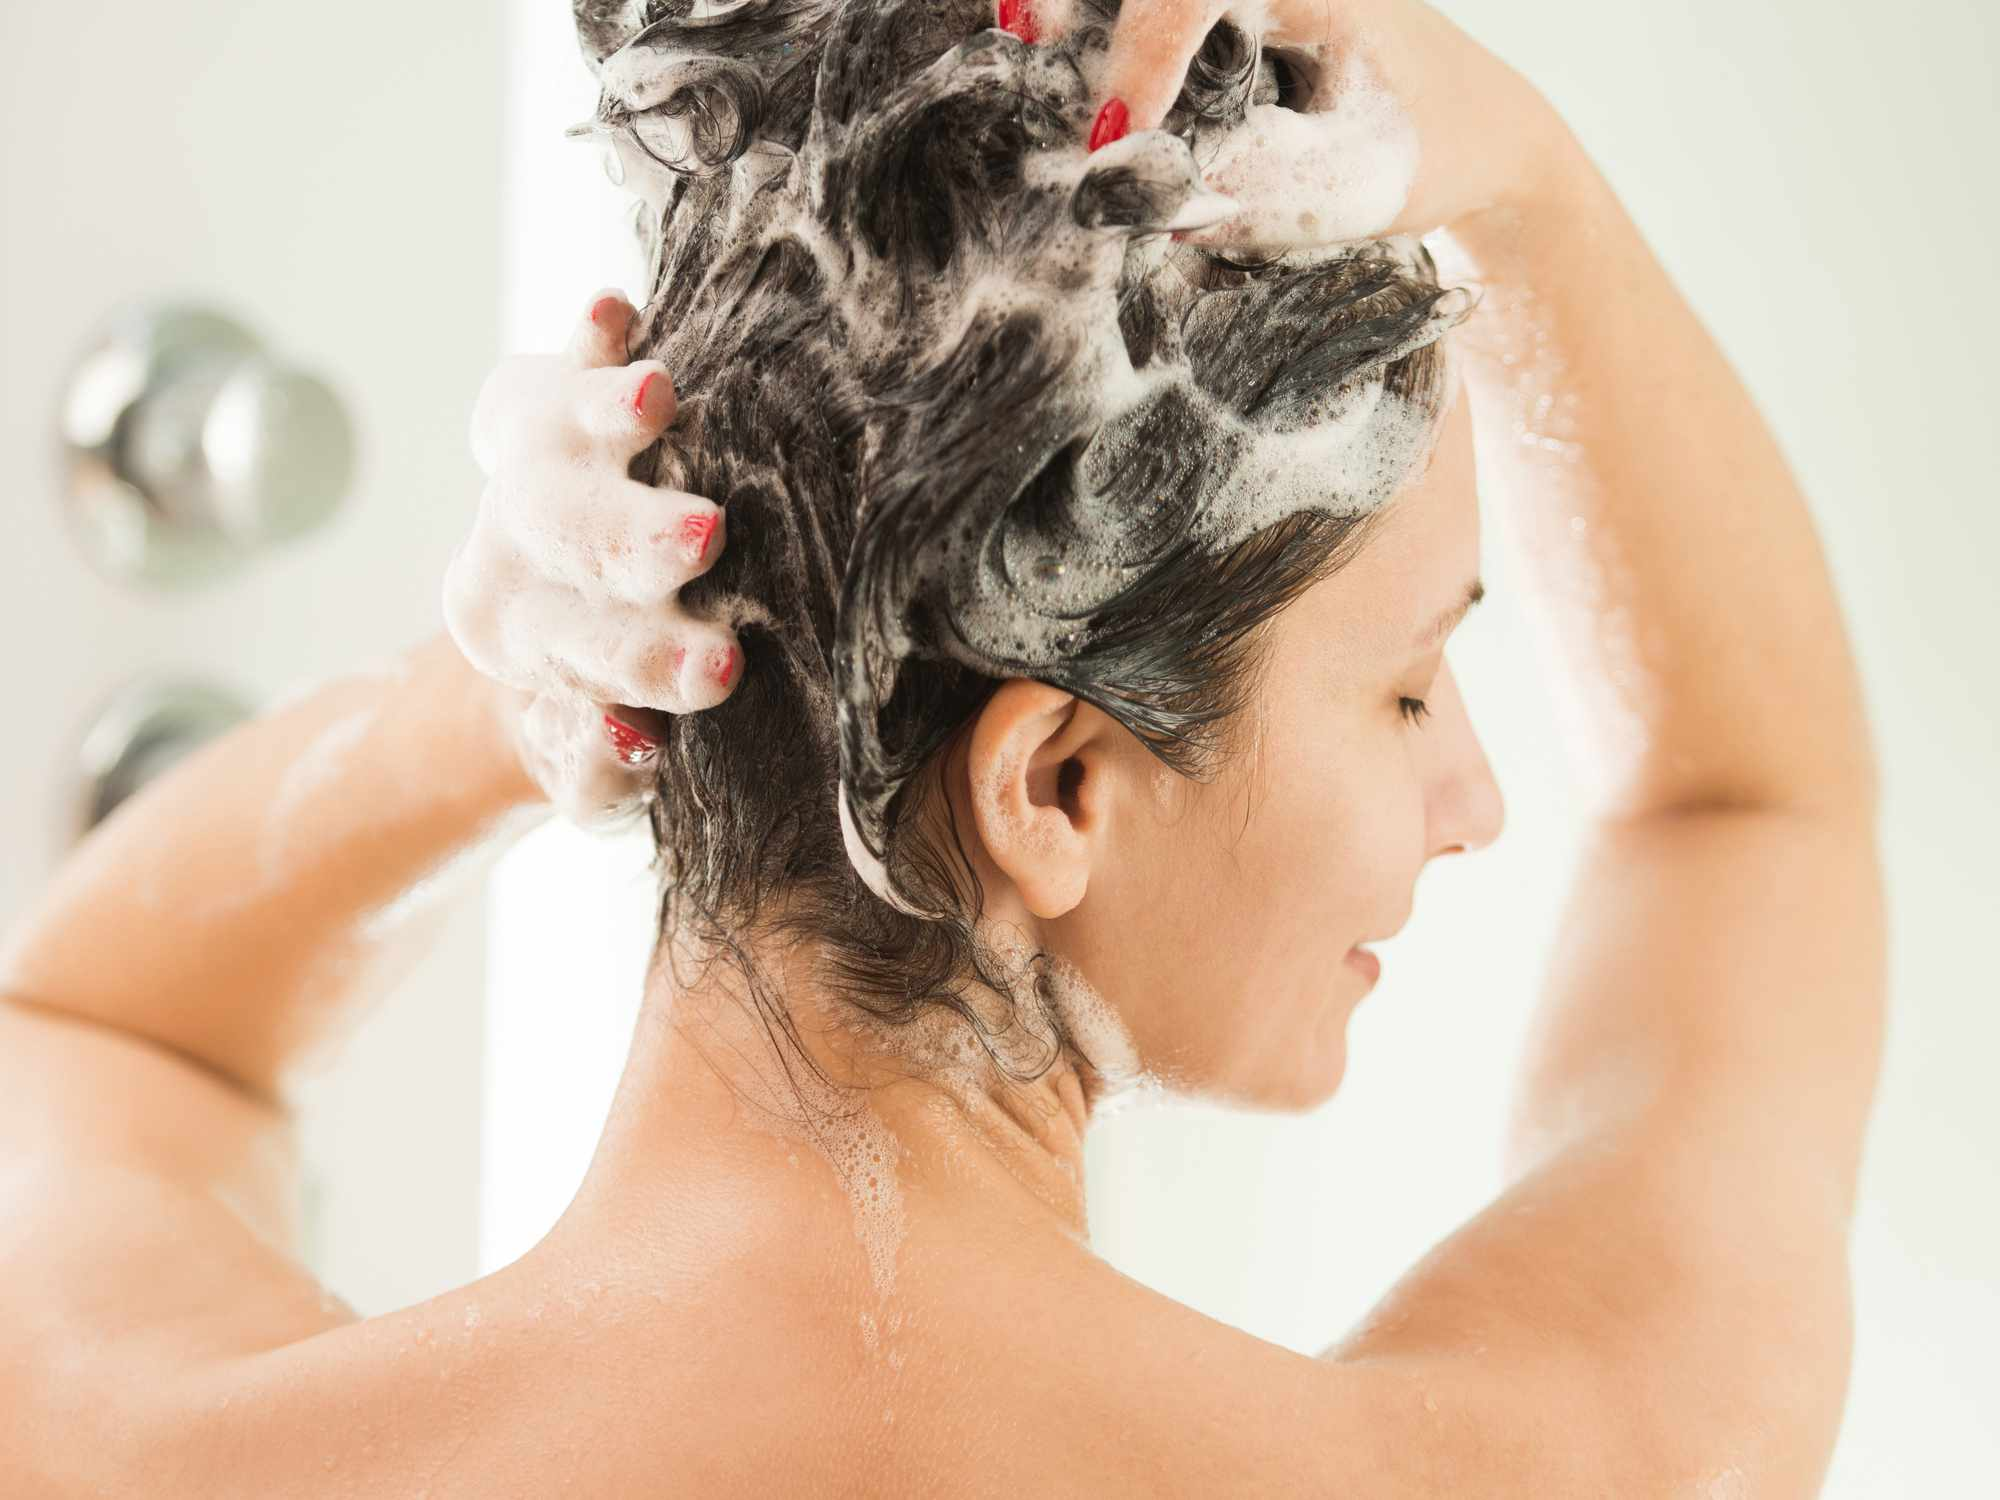 A woman with red nails lathering shampoo in her hair in the shower.